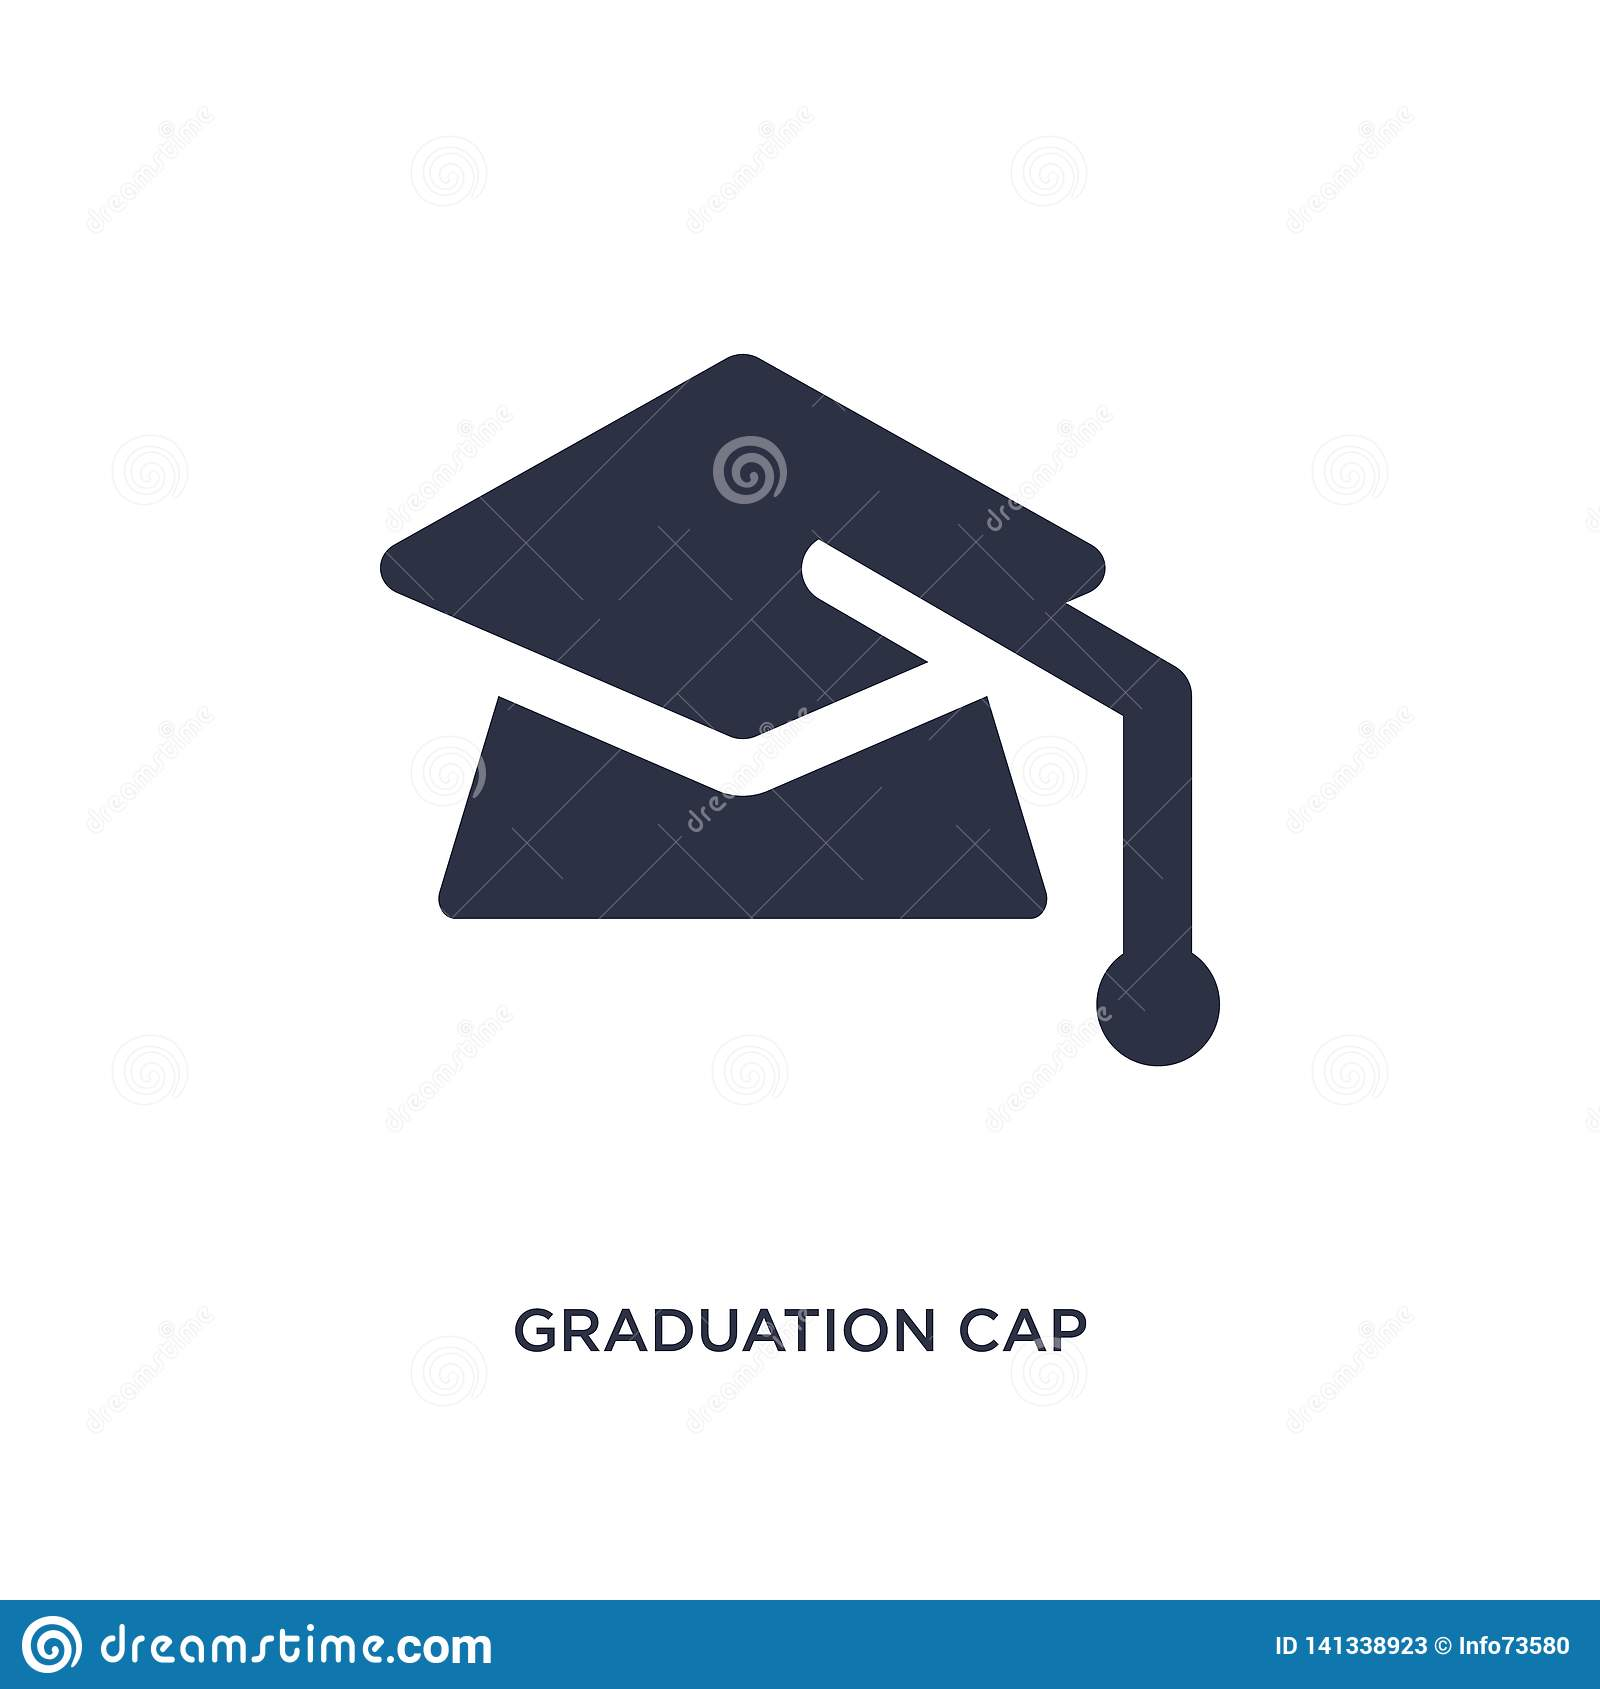 38db7c7af99 Simple element illustration from graduation and education concept. graduation  cap editable symbol design on white background. Can be use for web and  mobile